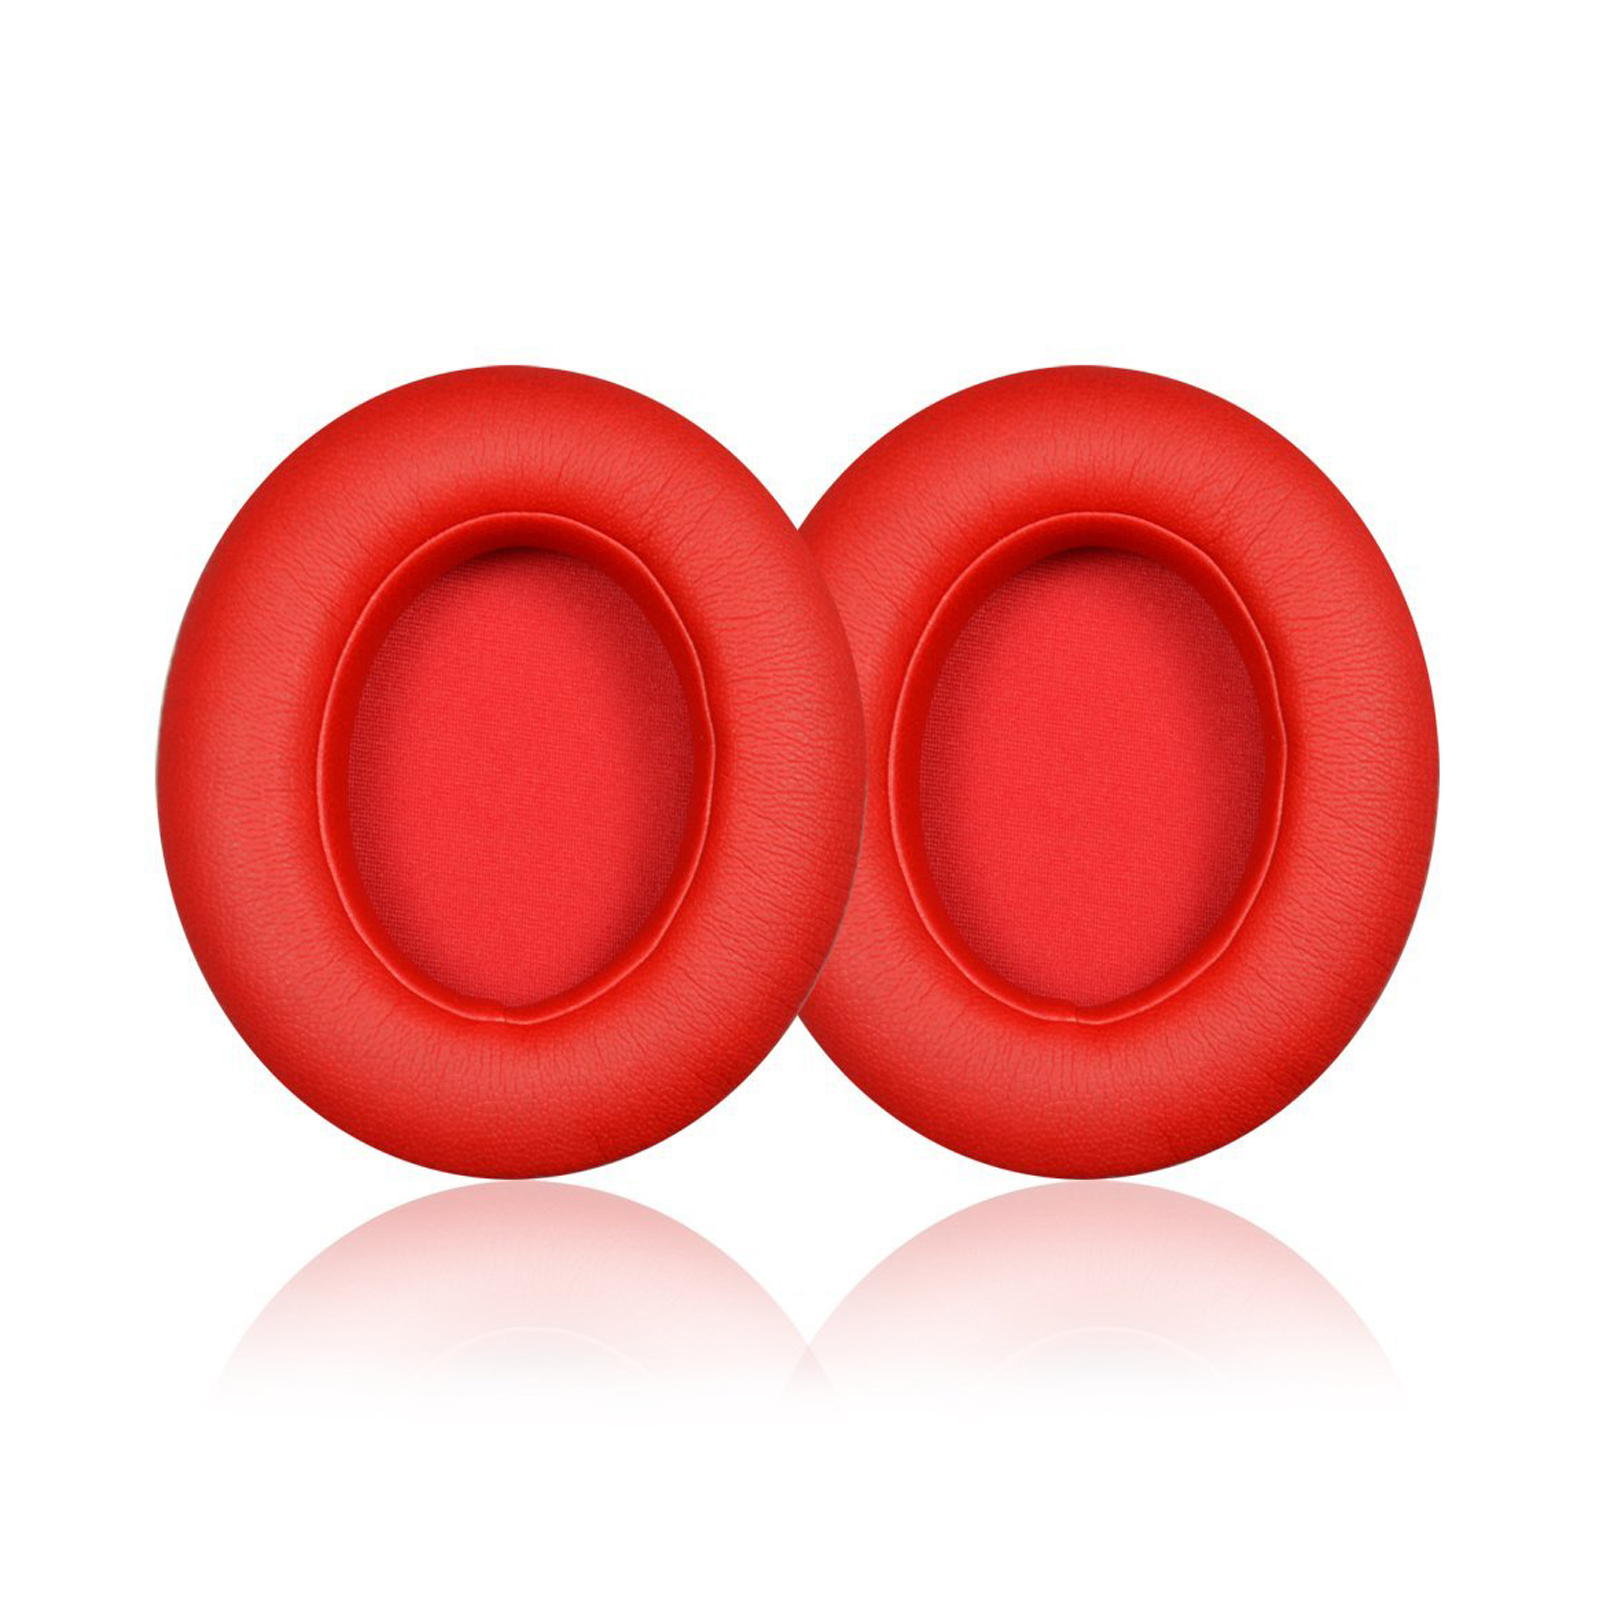 Replacement Earpad Ear Pads Cushions For Beats by Dr. Dre Studio 2.0 Headphones(Red)